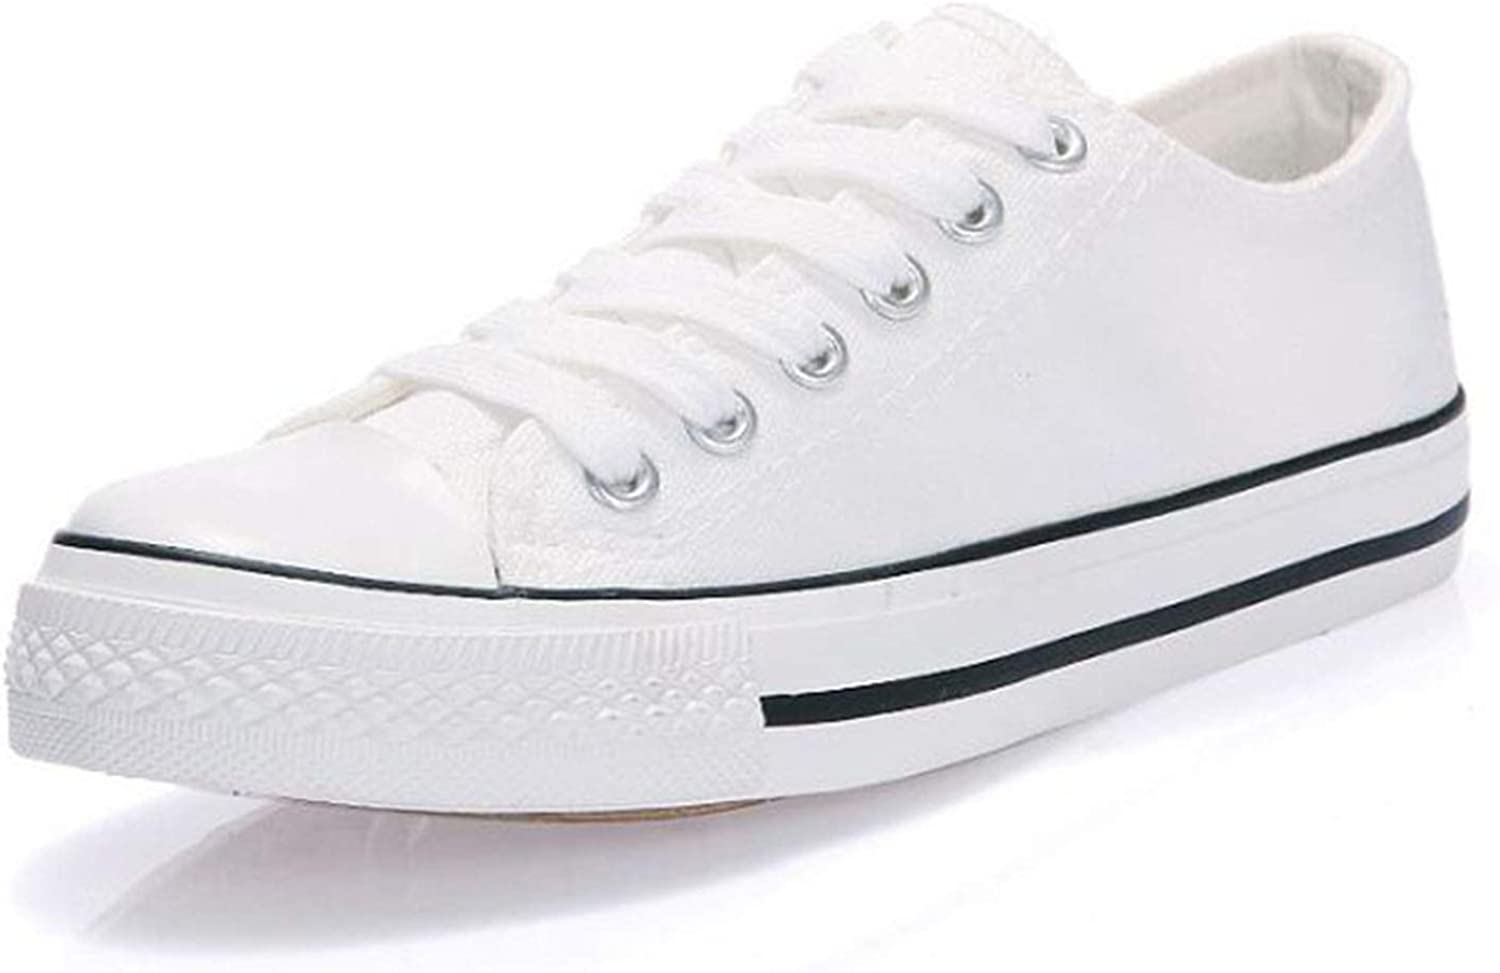 Spring Autumn Summer Boy Male Casual Canvas shoes Tenis LL-255